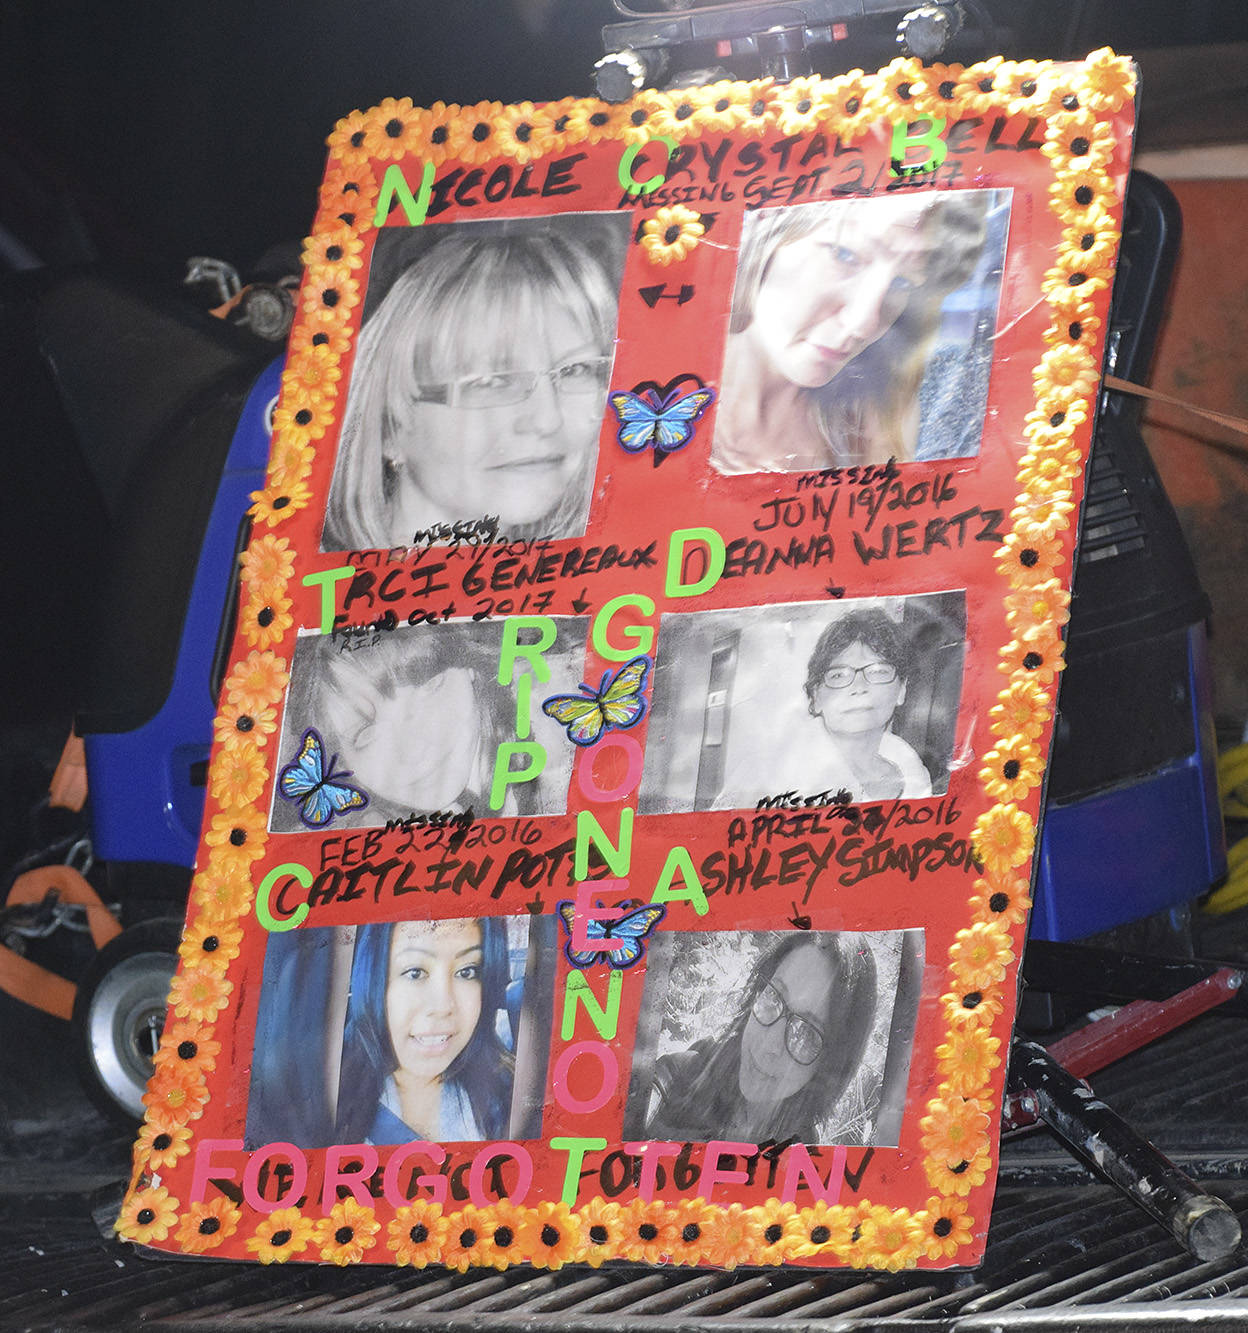 A poster of the missing women from the Shuswap as well as Traci Generaux whose remains were found on the farm was displayed at the rally on Oct. 30 in front of the Sagmoen farm on Salmon River Road near Silver Creek. (Martha Wickett - Salmon Arm Observer)